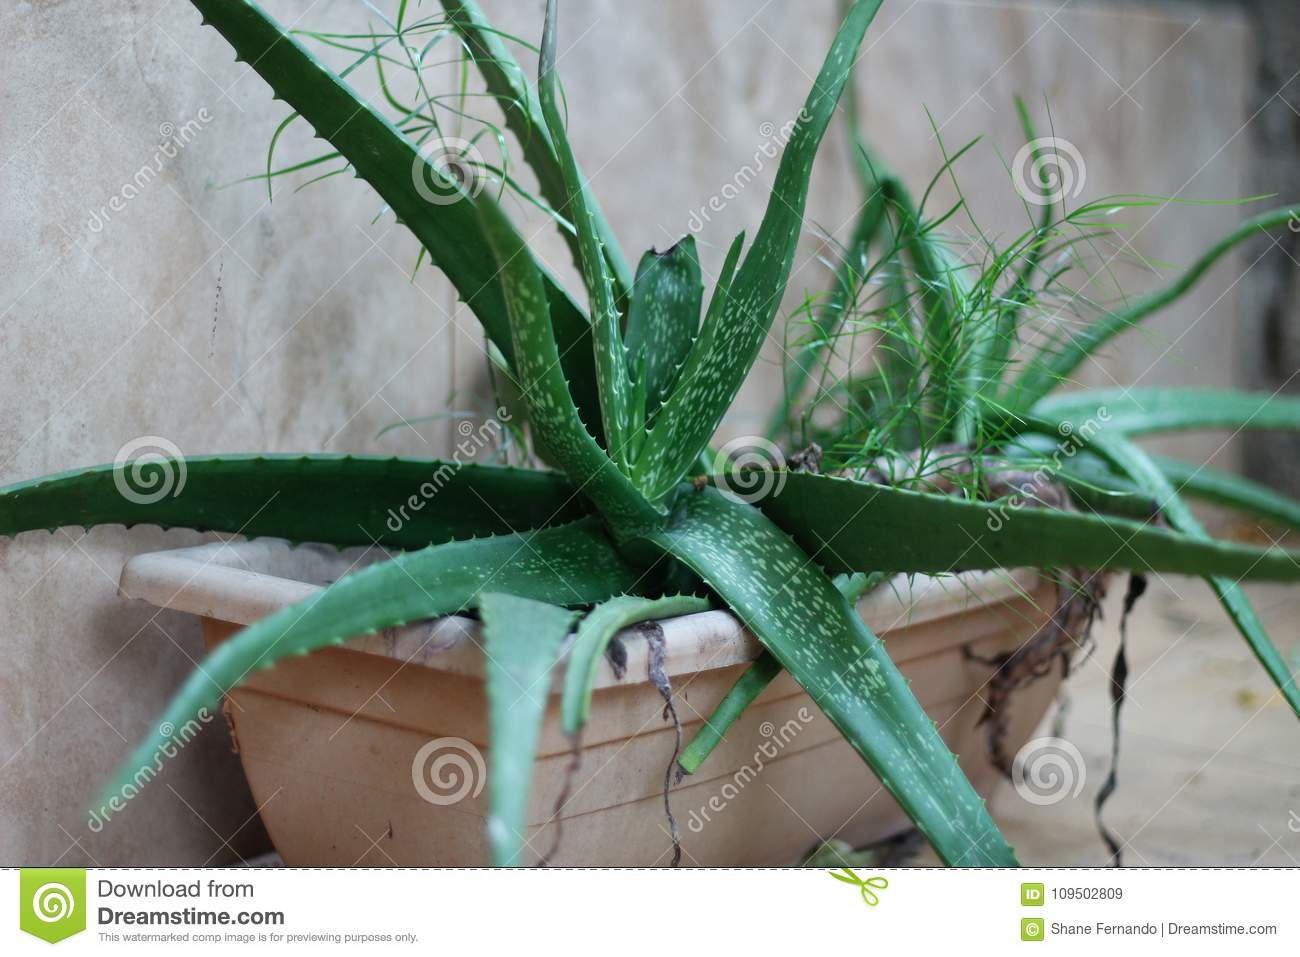 How aloe vera is used in cosmetology